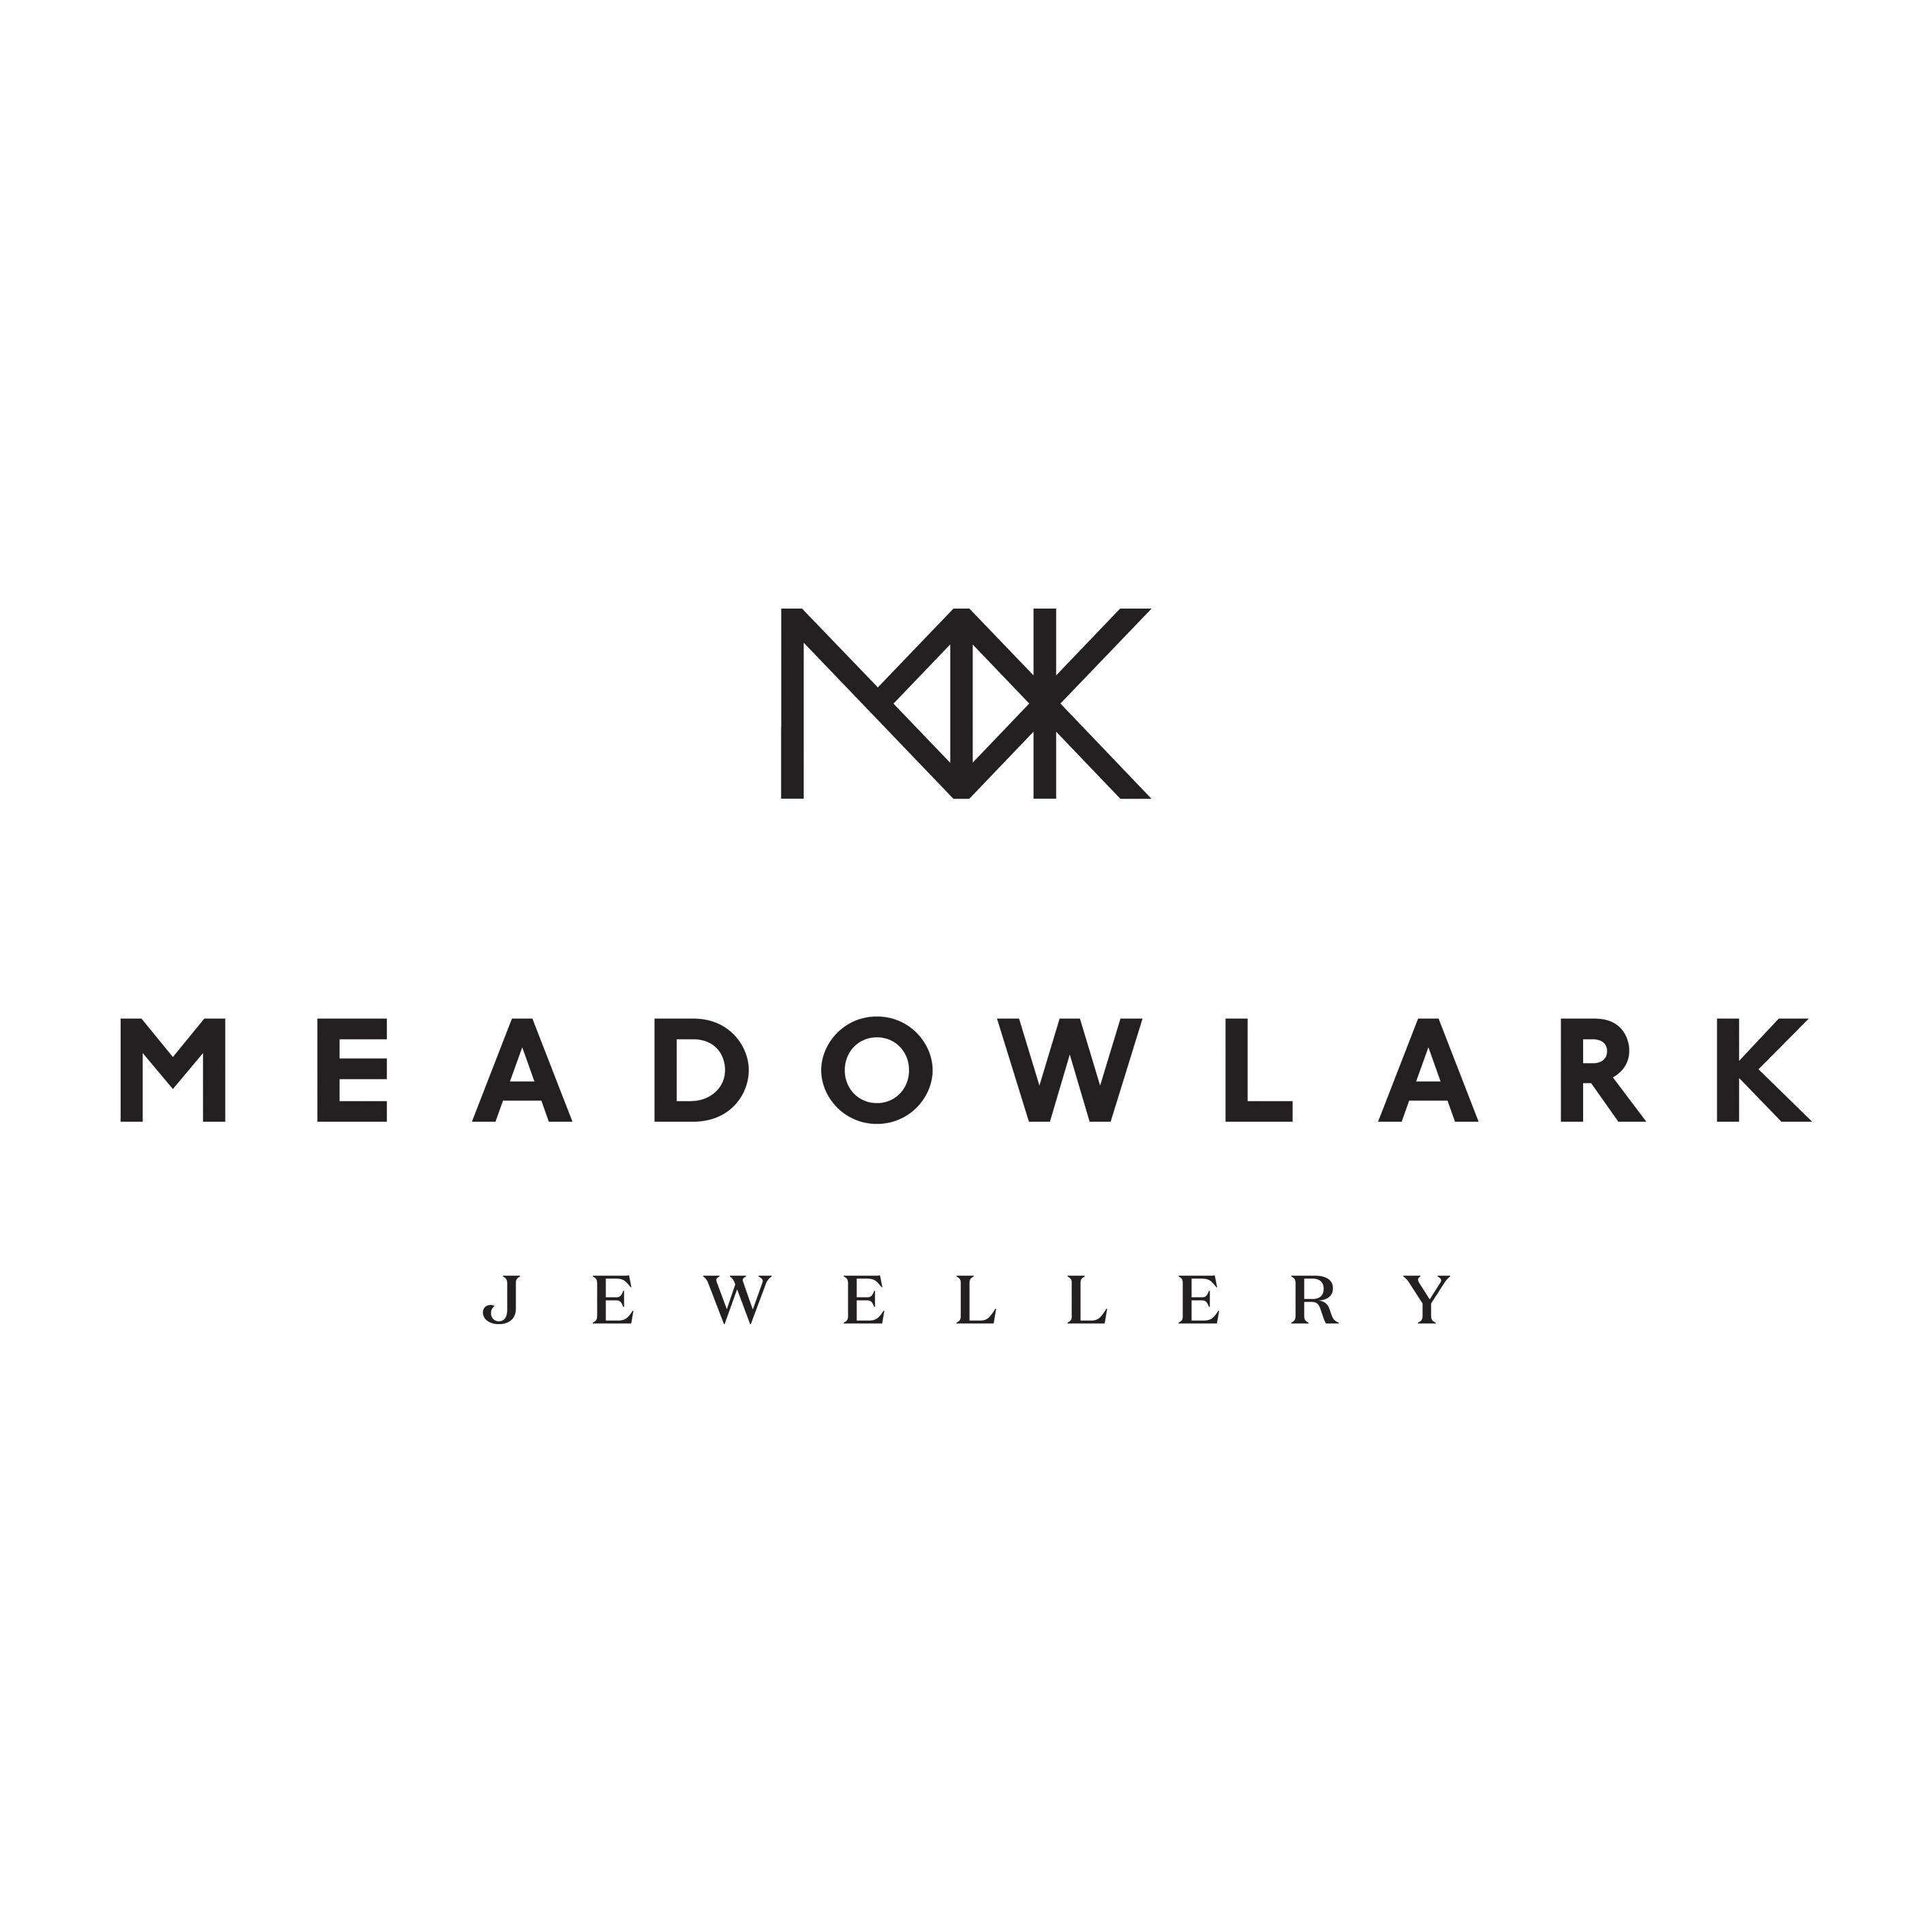 Meadowlark | NOT JUST A LABEL